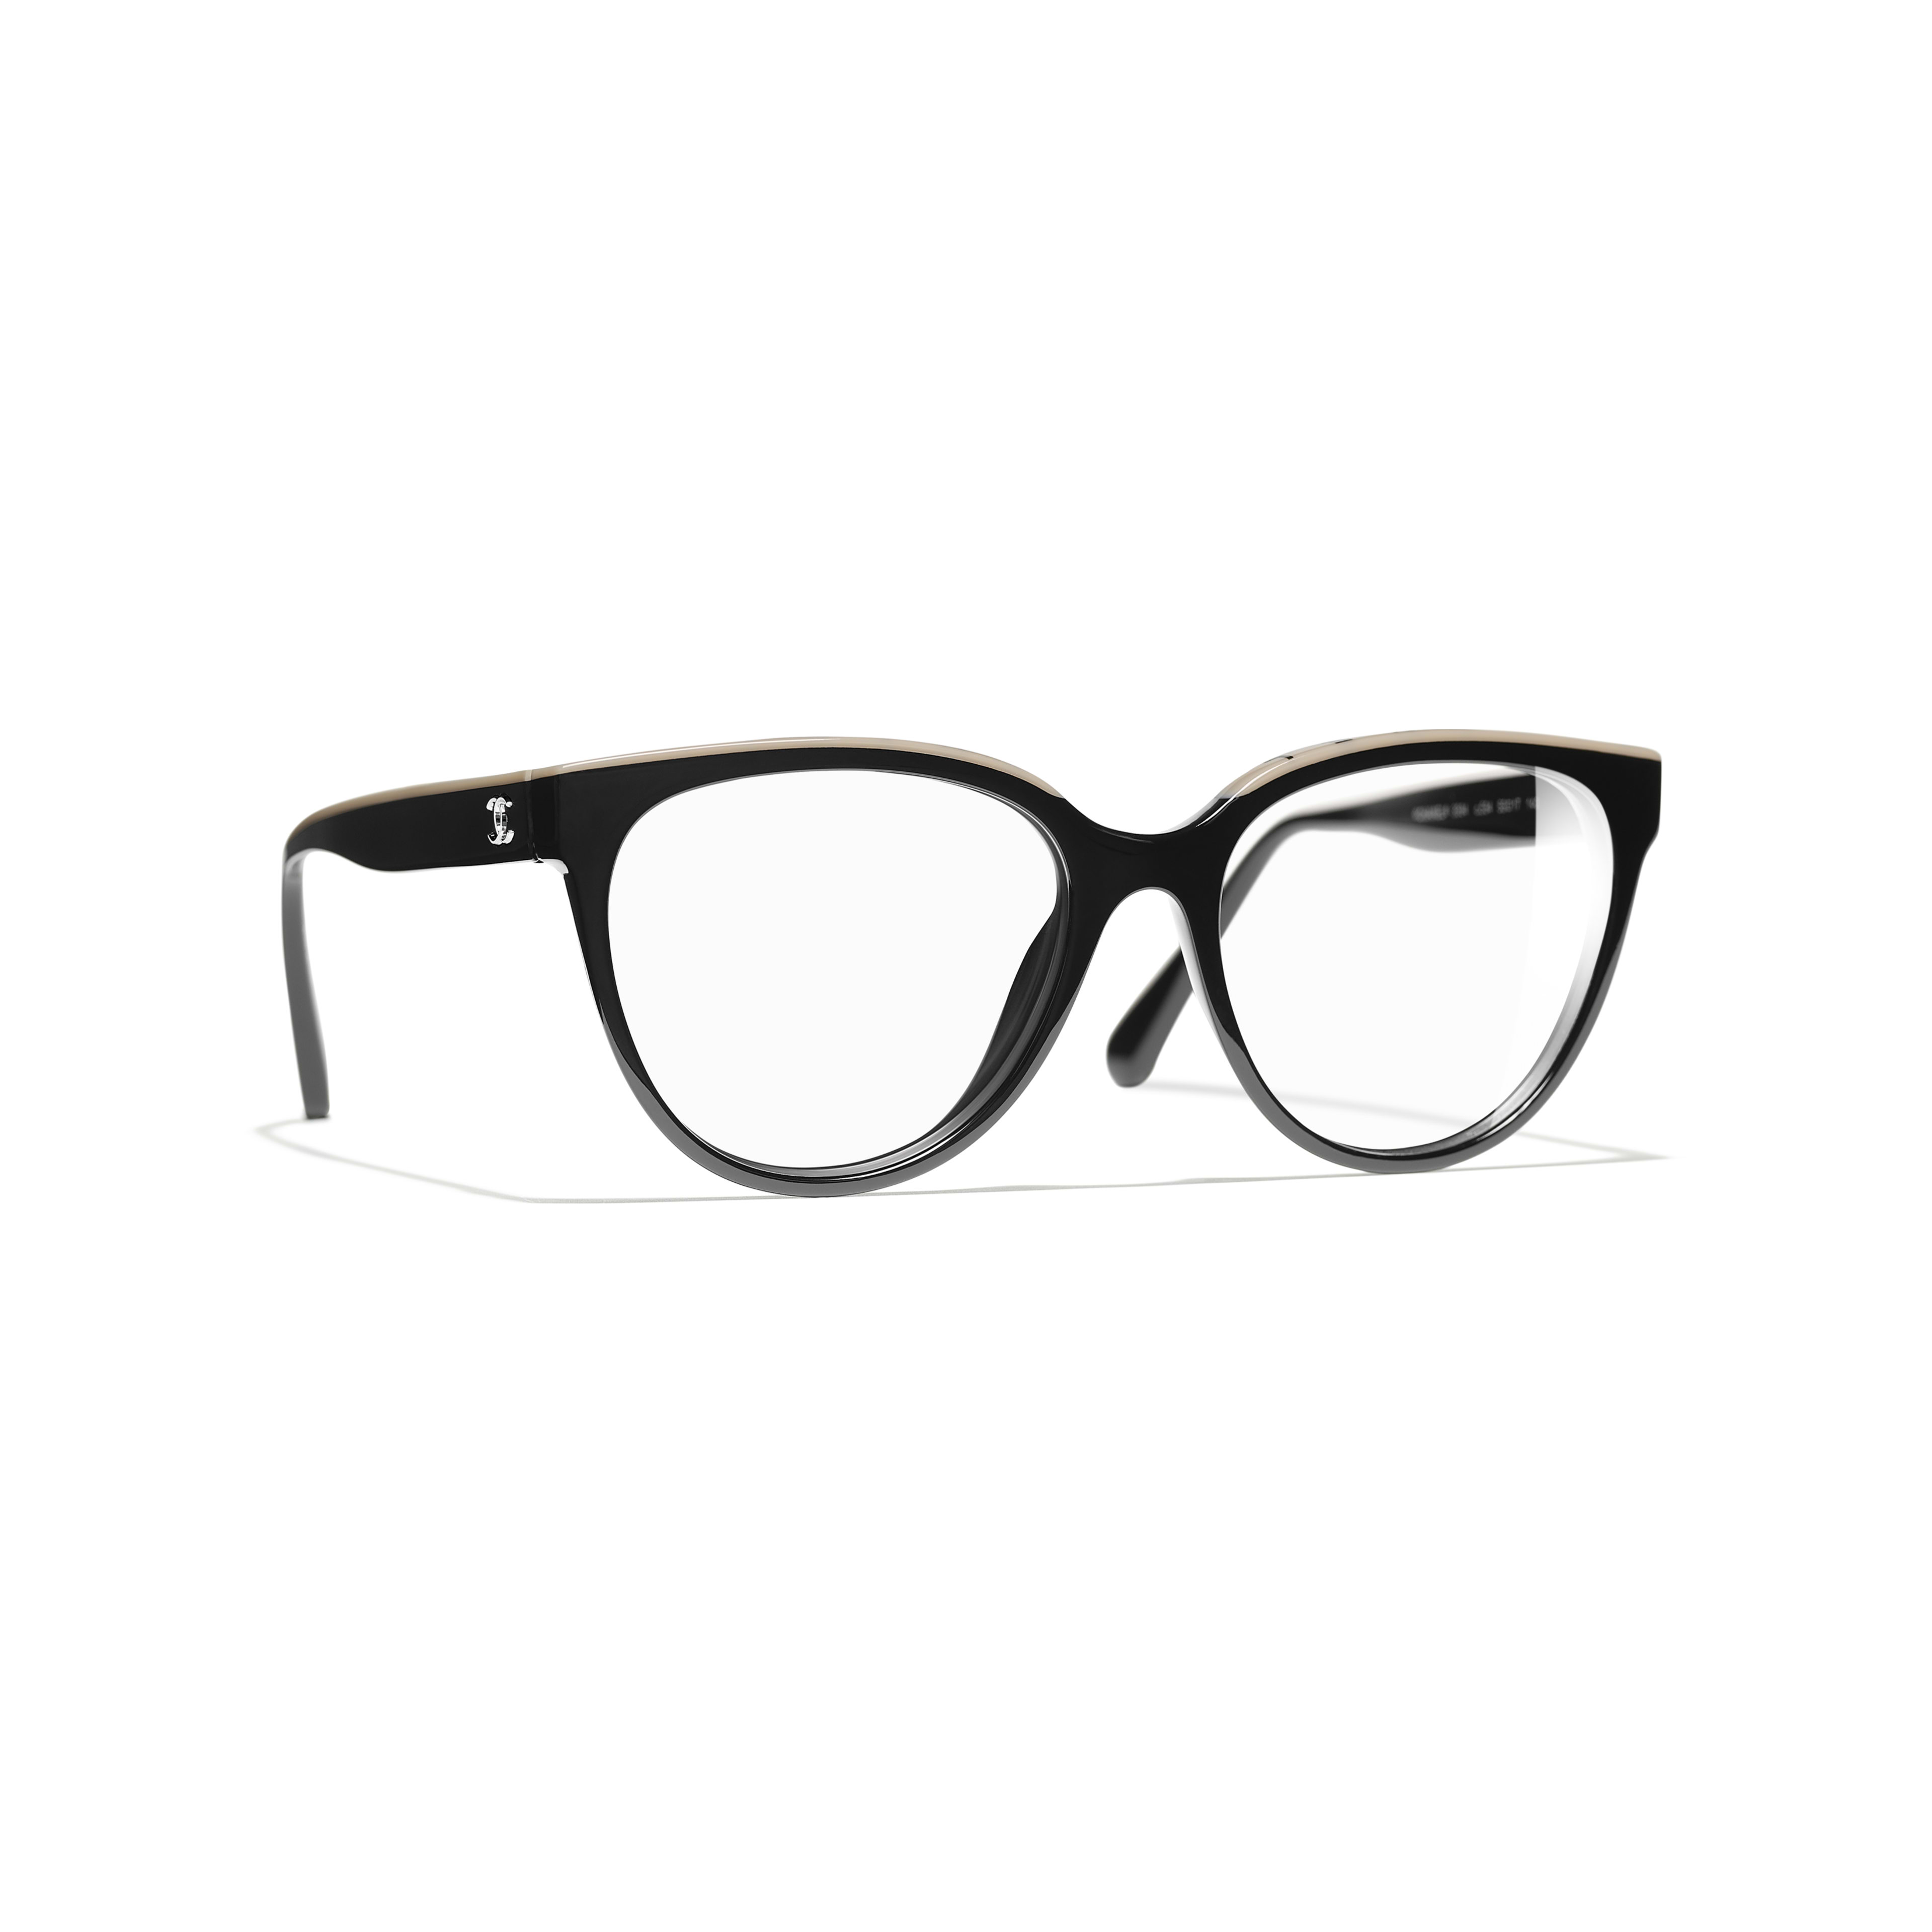 Butterfly Eyeglasses - Black & Beige - Acetate - Default view - see full sized version